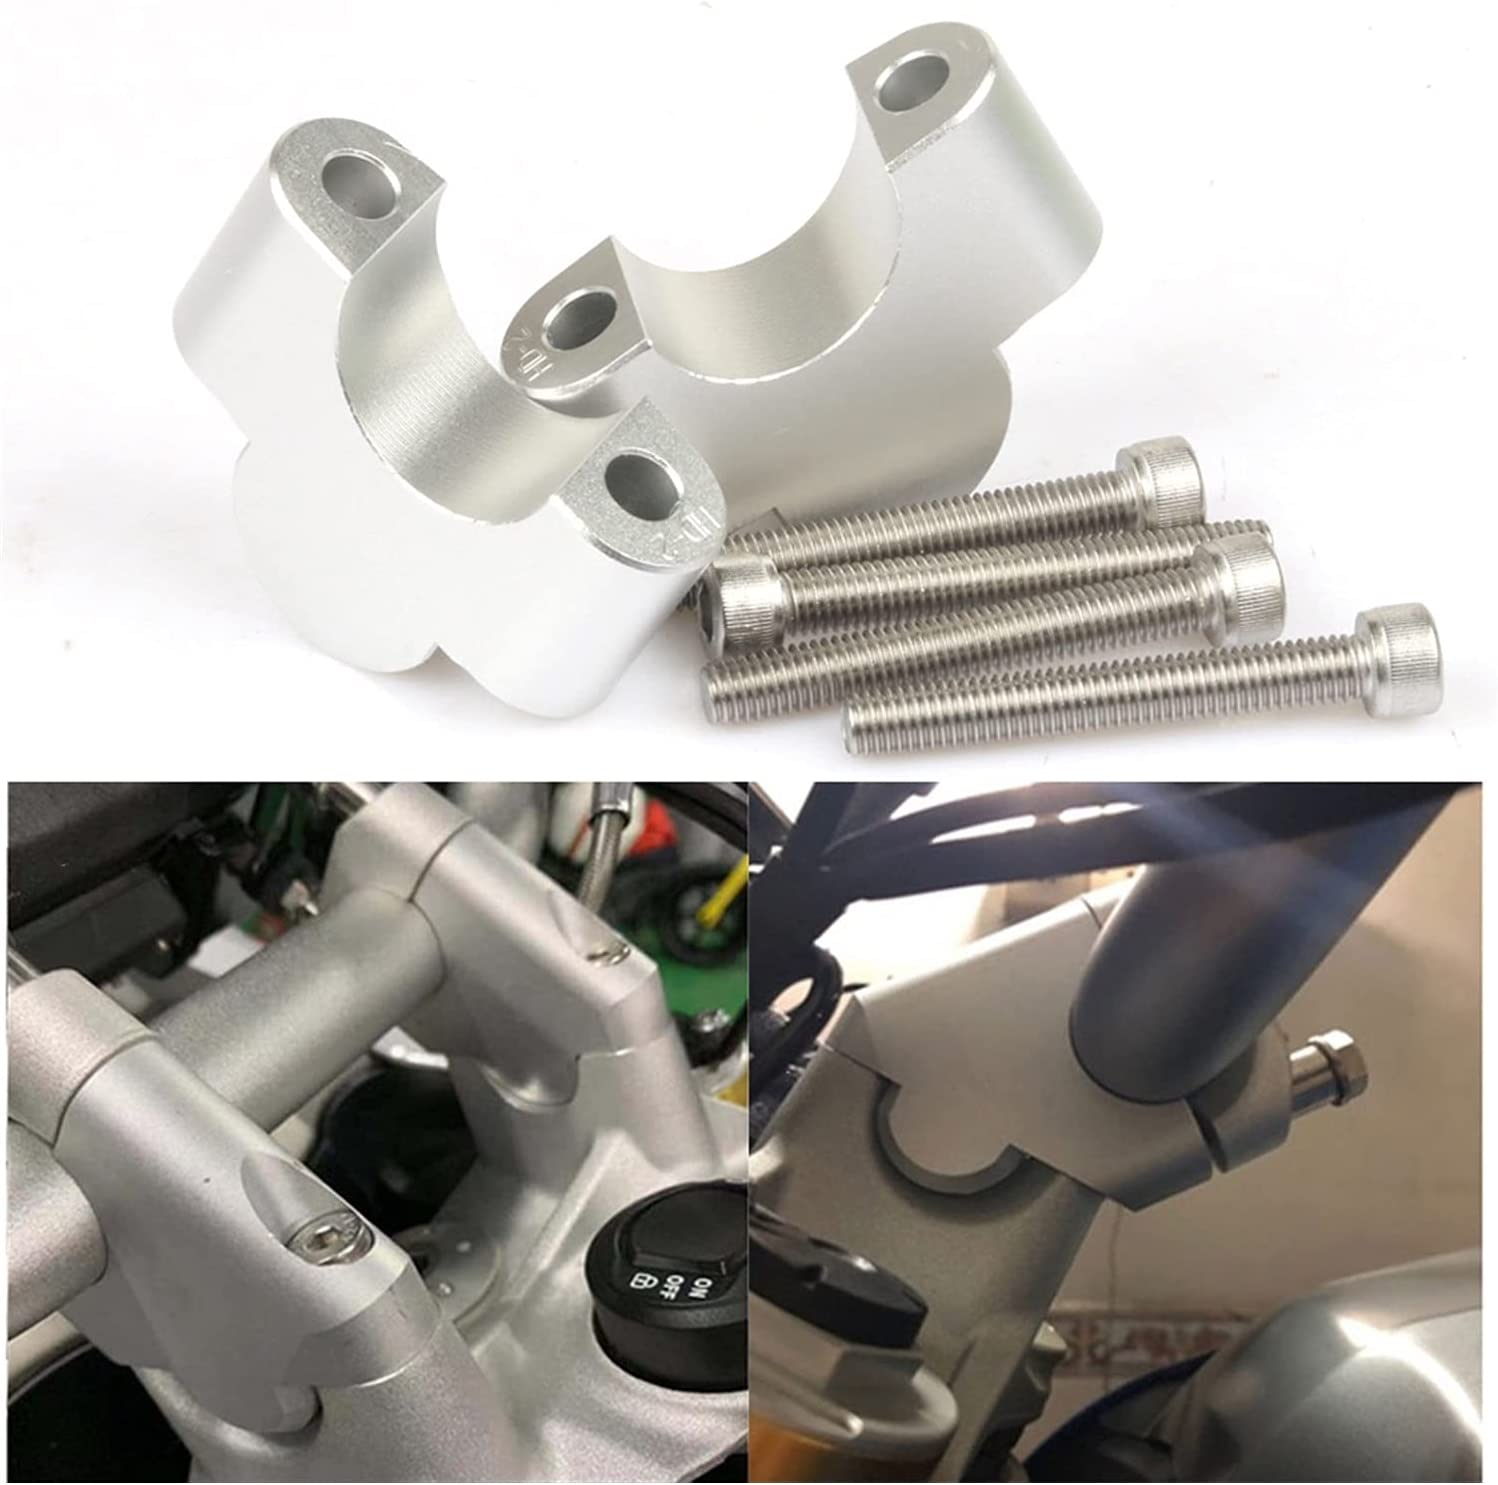 New product Louisville-Jefferson County Mall type FXDCY Suitable for B-MW R1200R R1200 1200 Handl R Motorcycle